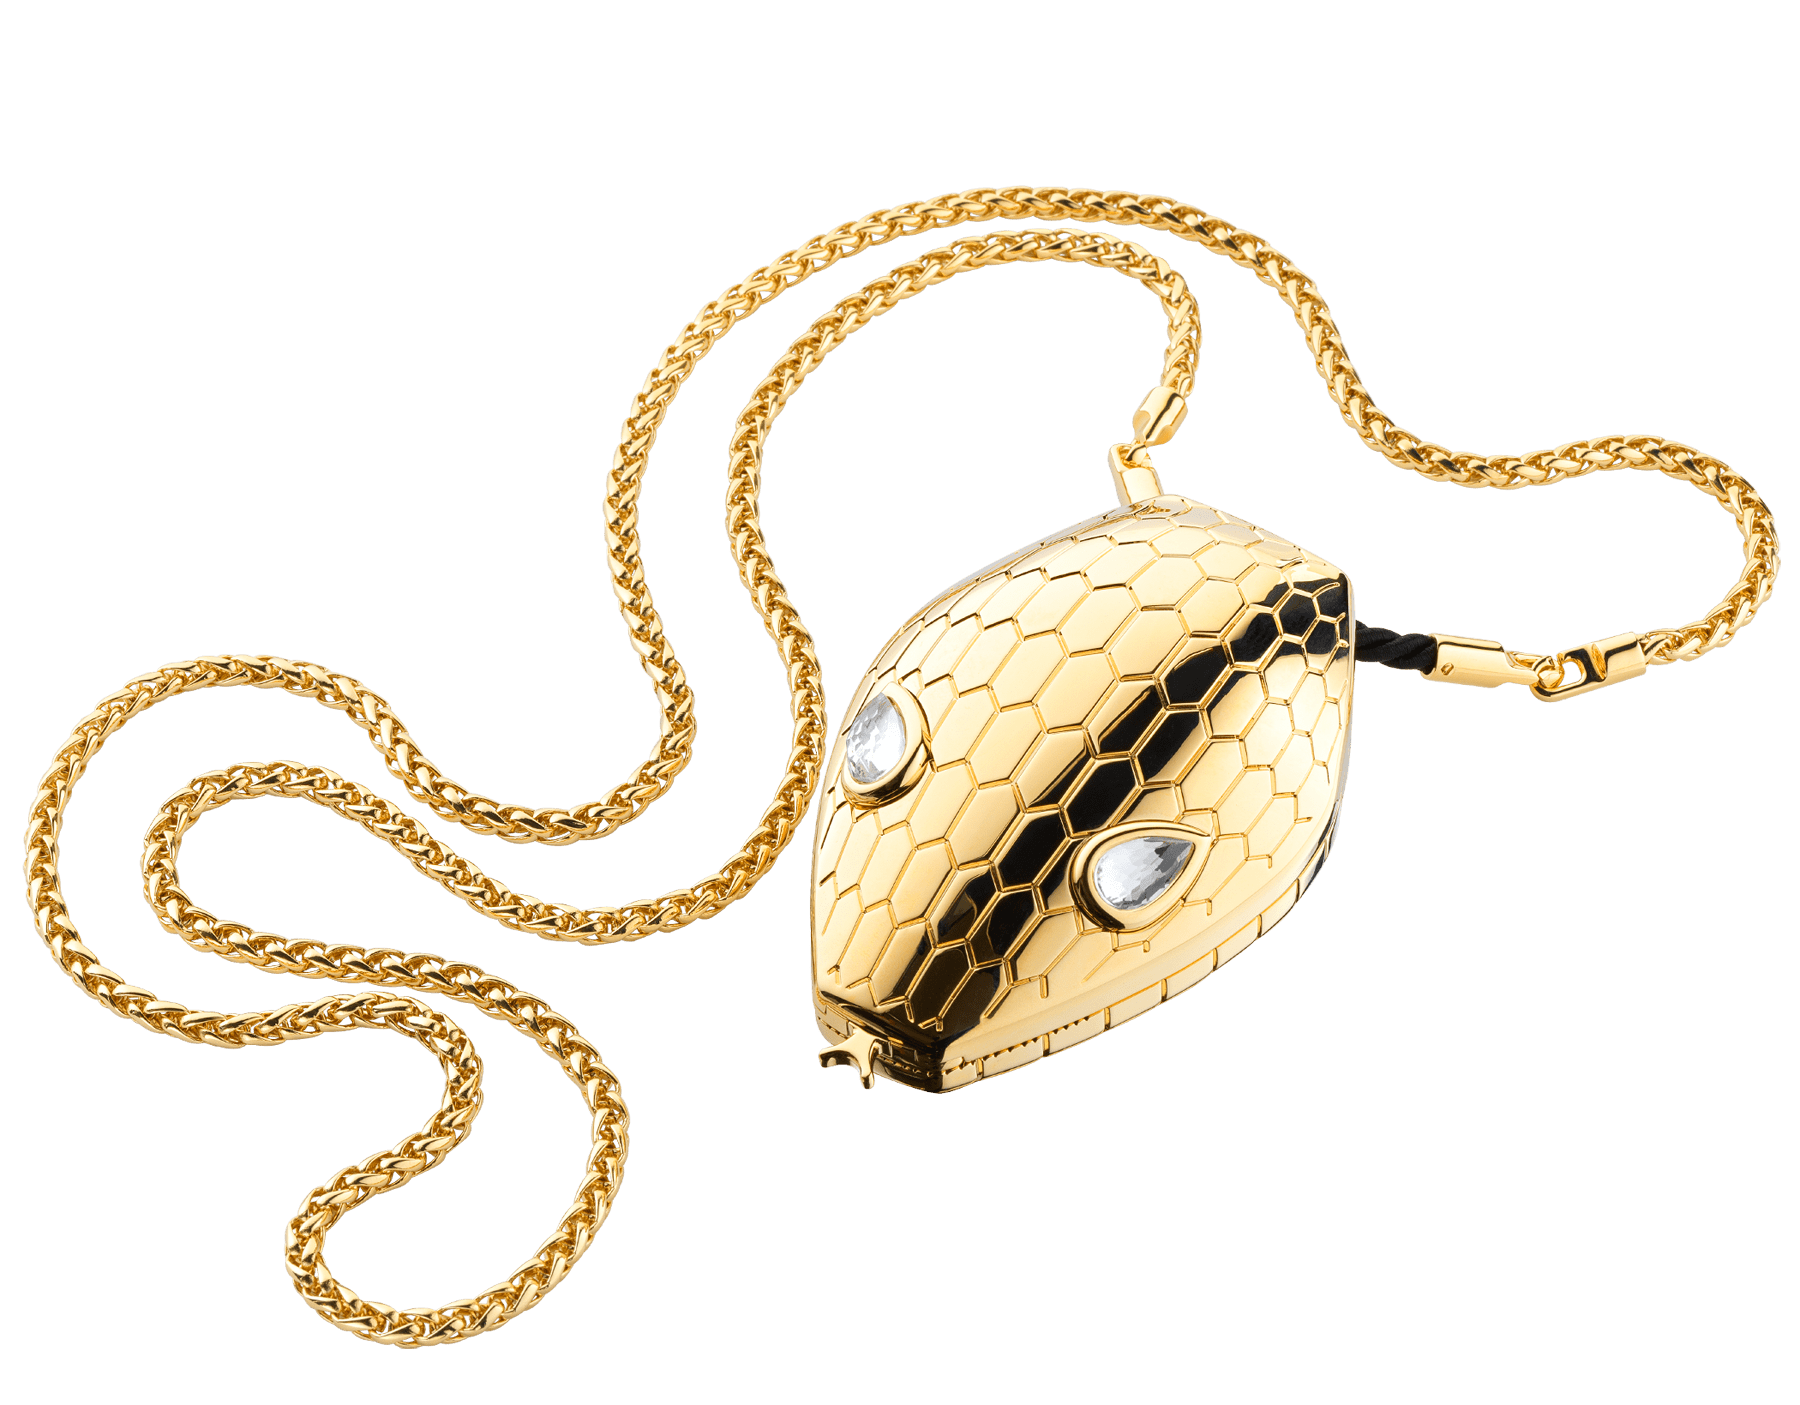 """""""Mary Katrantzou x Bvlgari"""" minaudière in gold-plated brass, finished with seductive crystal eyes. Special Edition. MK-1158 image 1"""